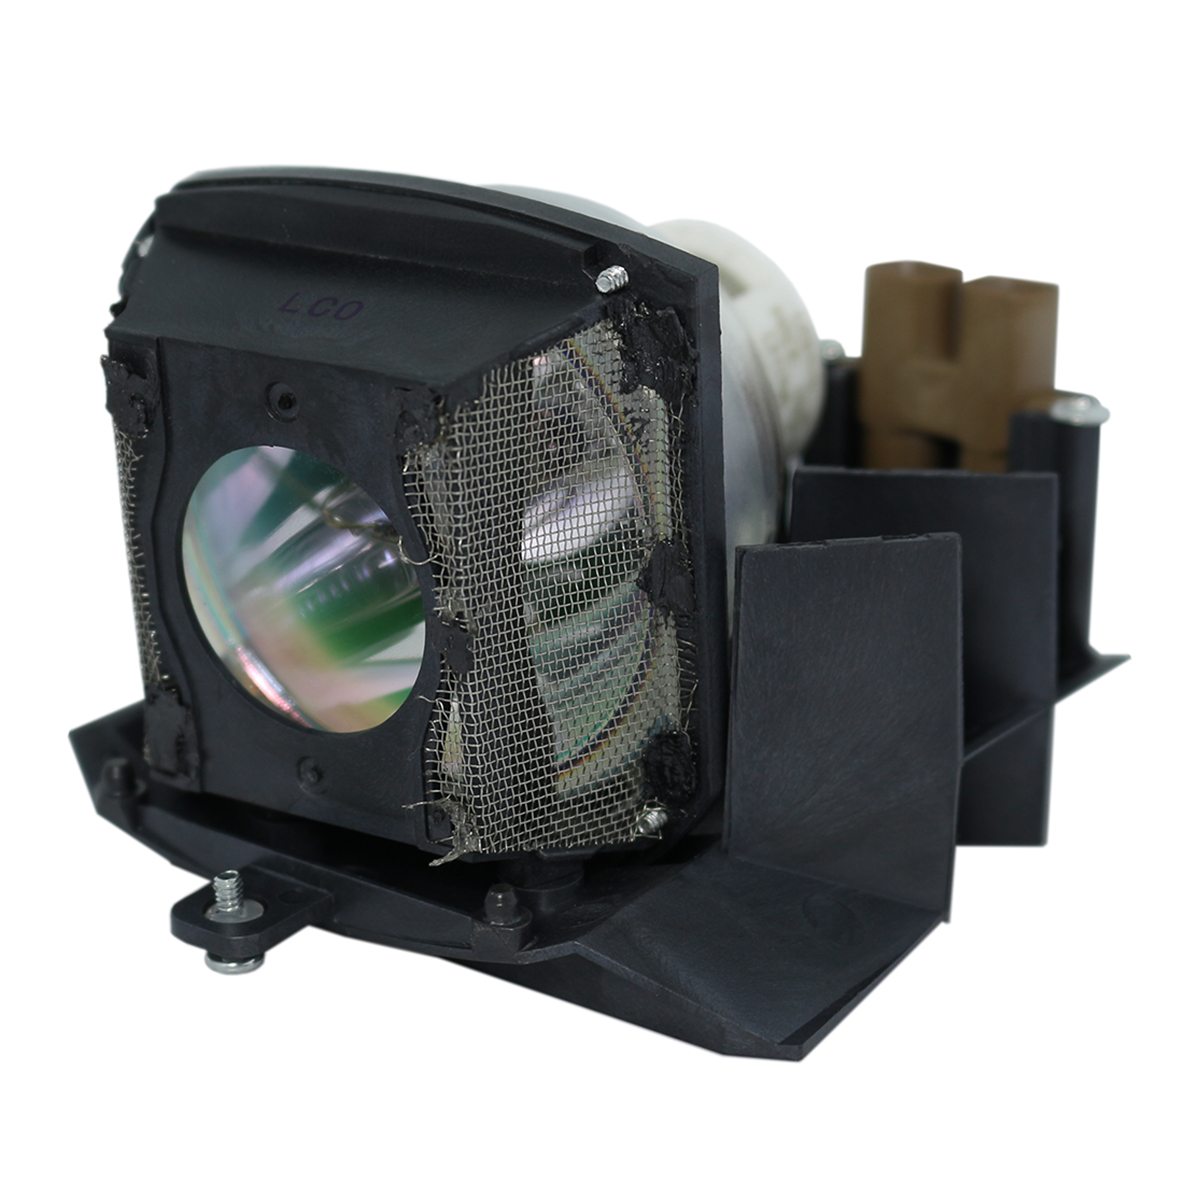 OEM Plus Projector Lamp Replaces Model U5-111 with Housing